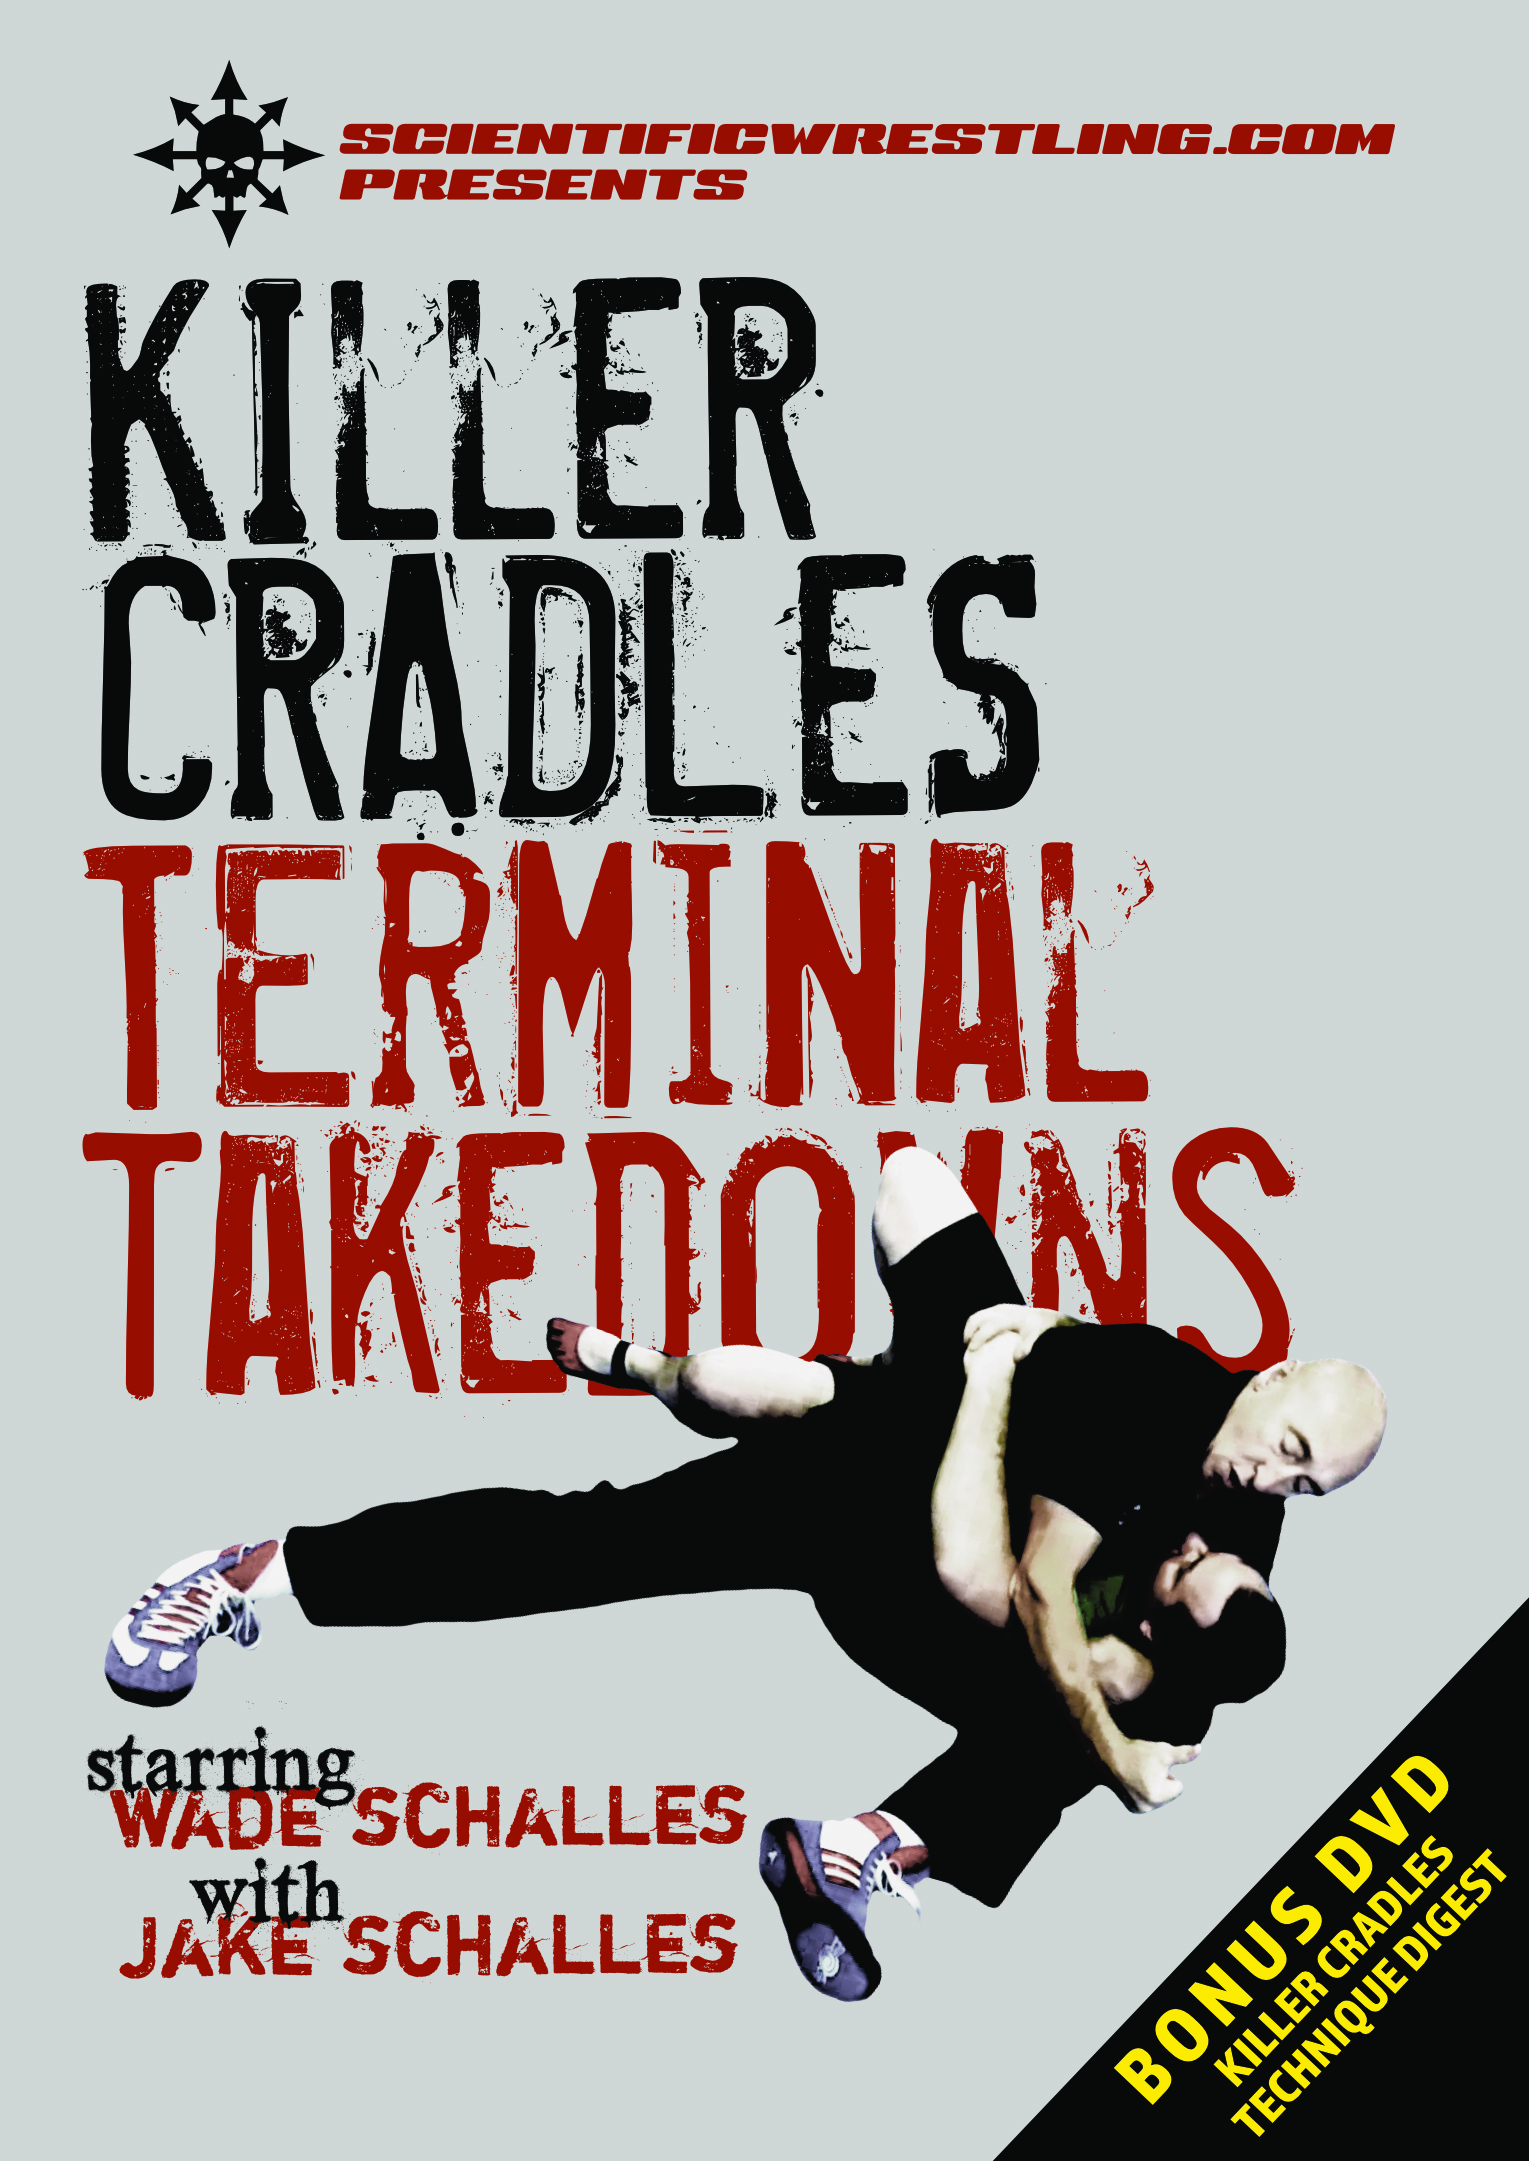 KILLER CRADLES: Terminal Takedowns starring Wade Schalles